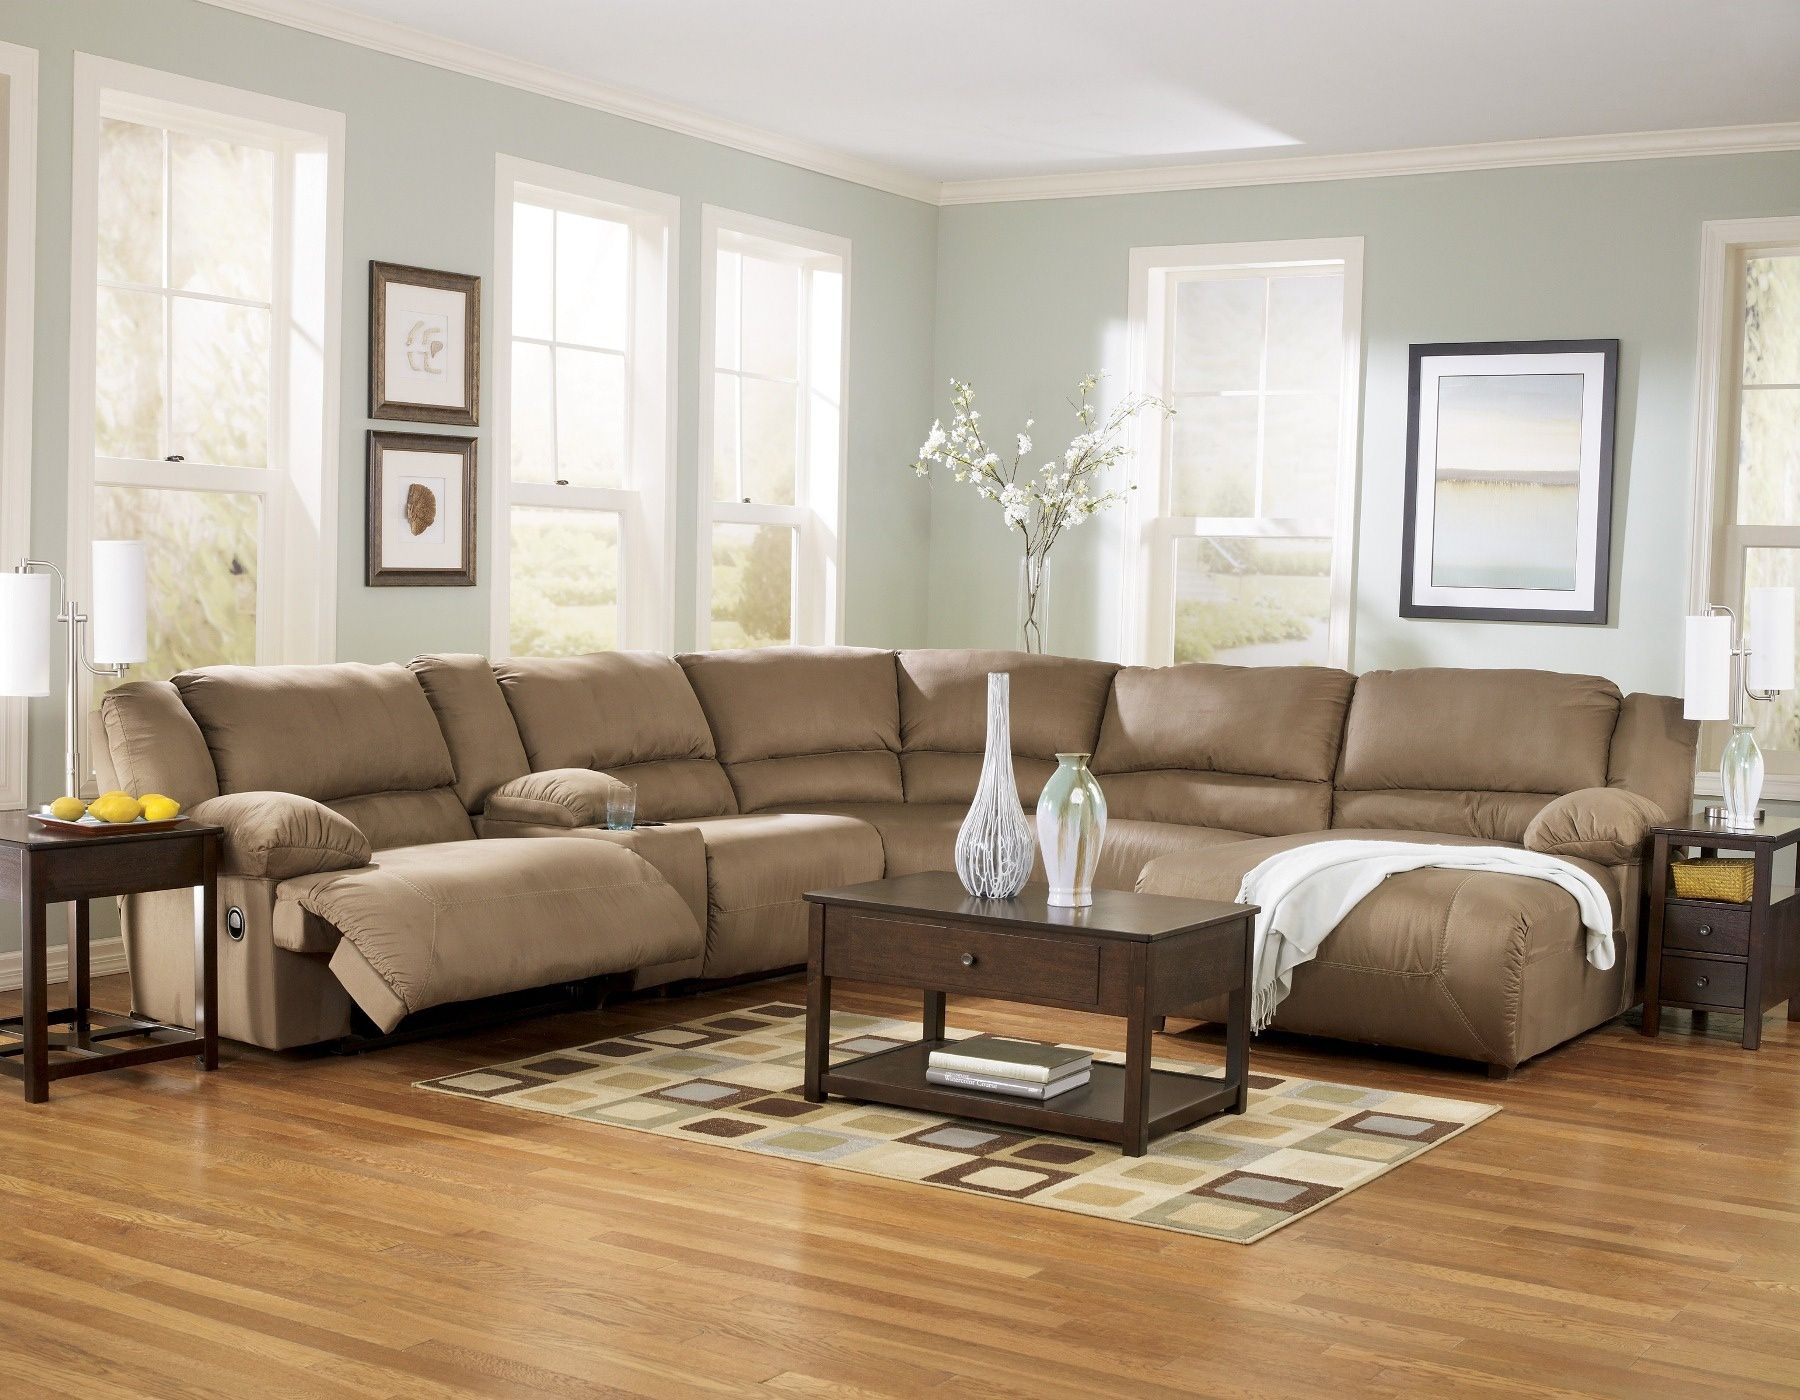 Furniture Classy Cheap Living Room Sectionals Sofa Design With L